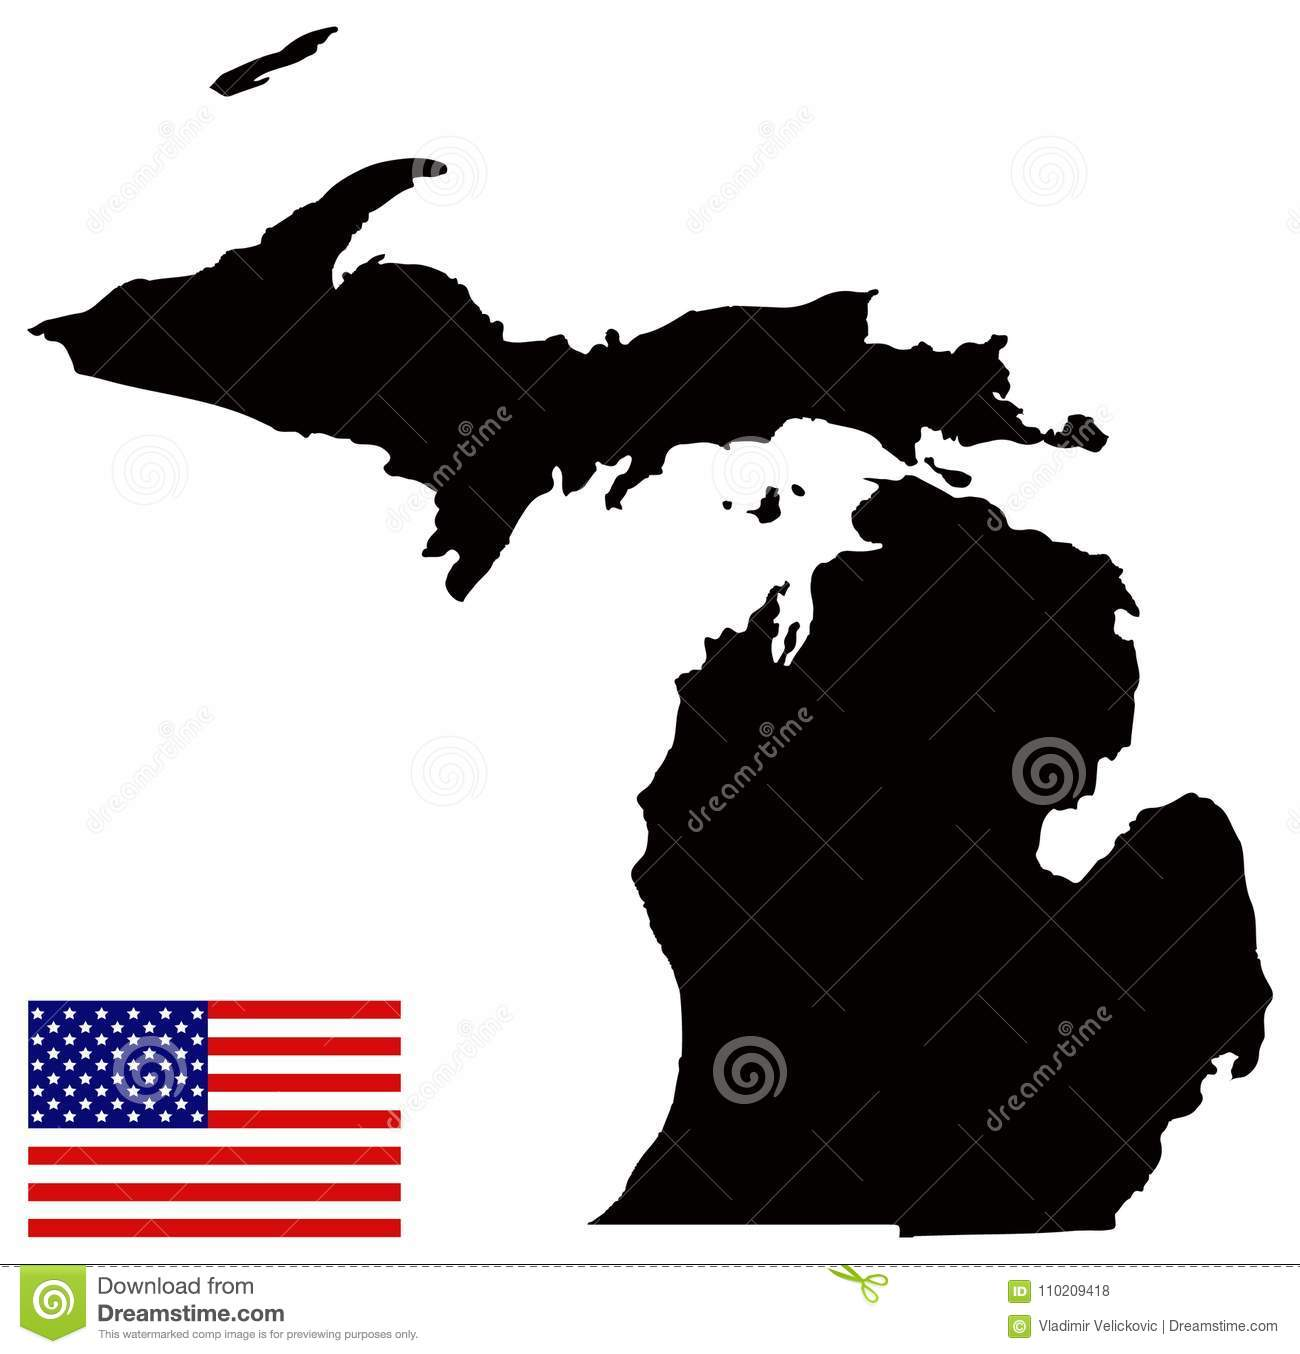 Michigan Map With USA Flag - State In The Great Lakes And Midwestern ...